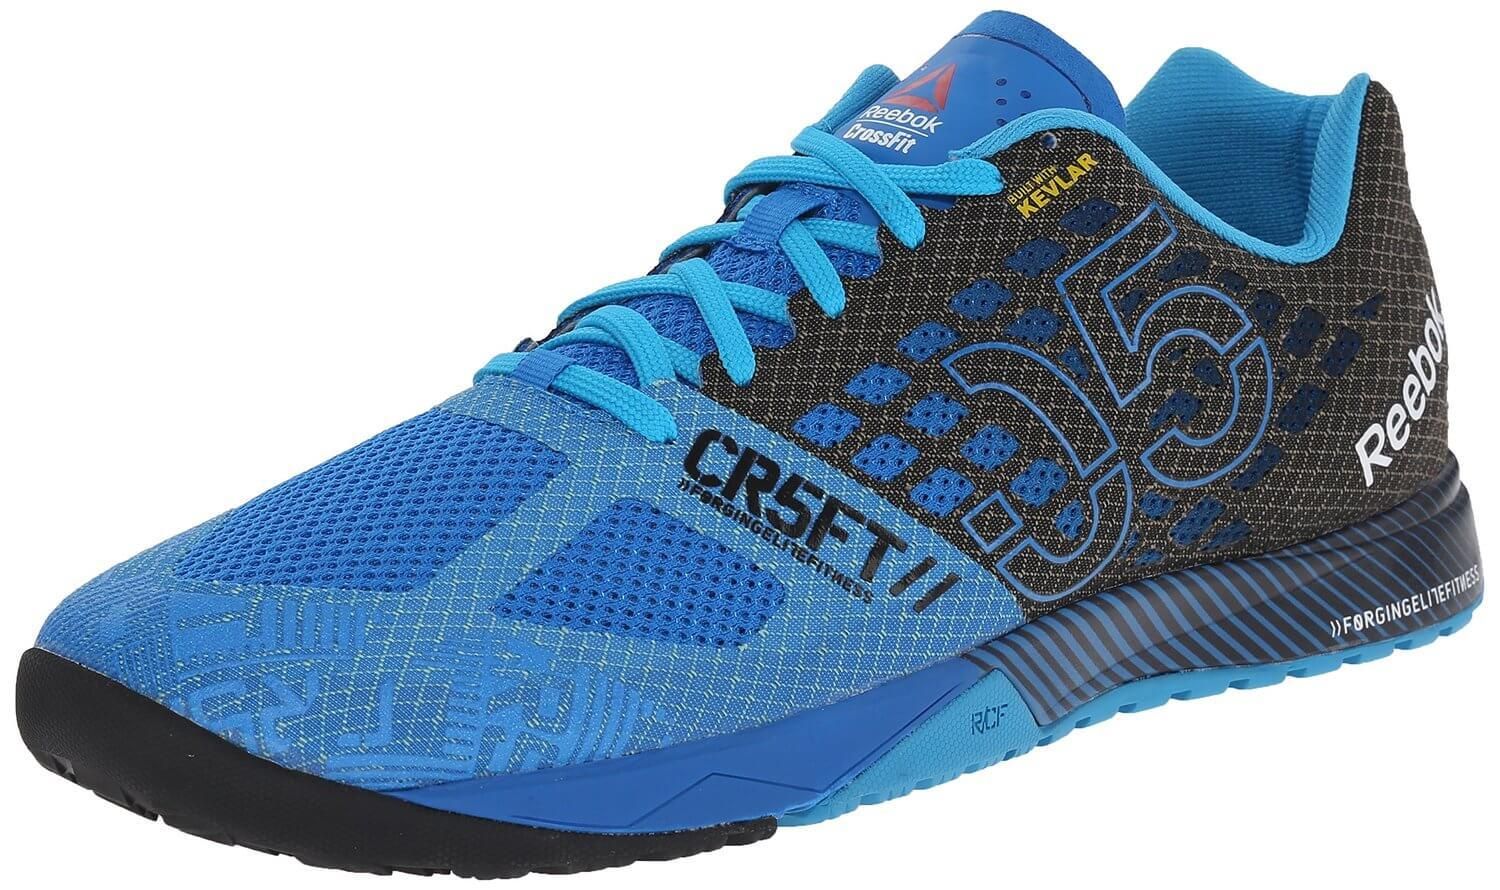 b52b362c1 Reebok CrossFit Nano 5.0 - To Buy or Not in May 2019